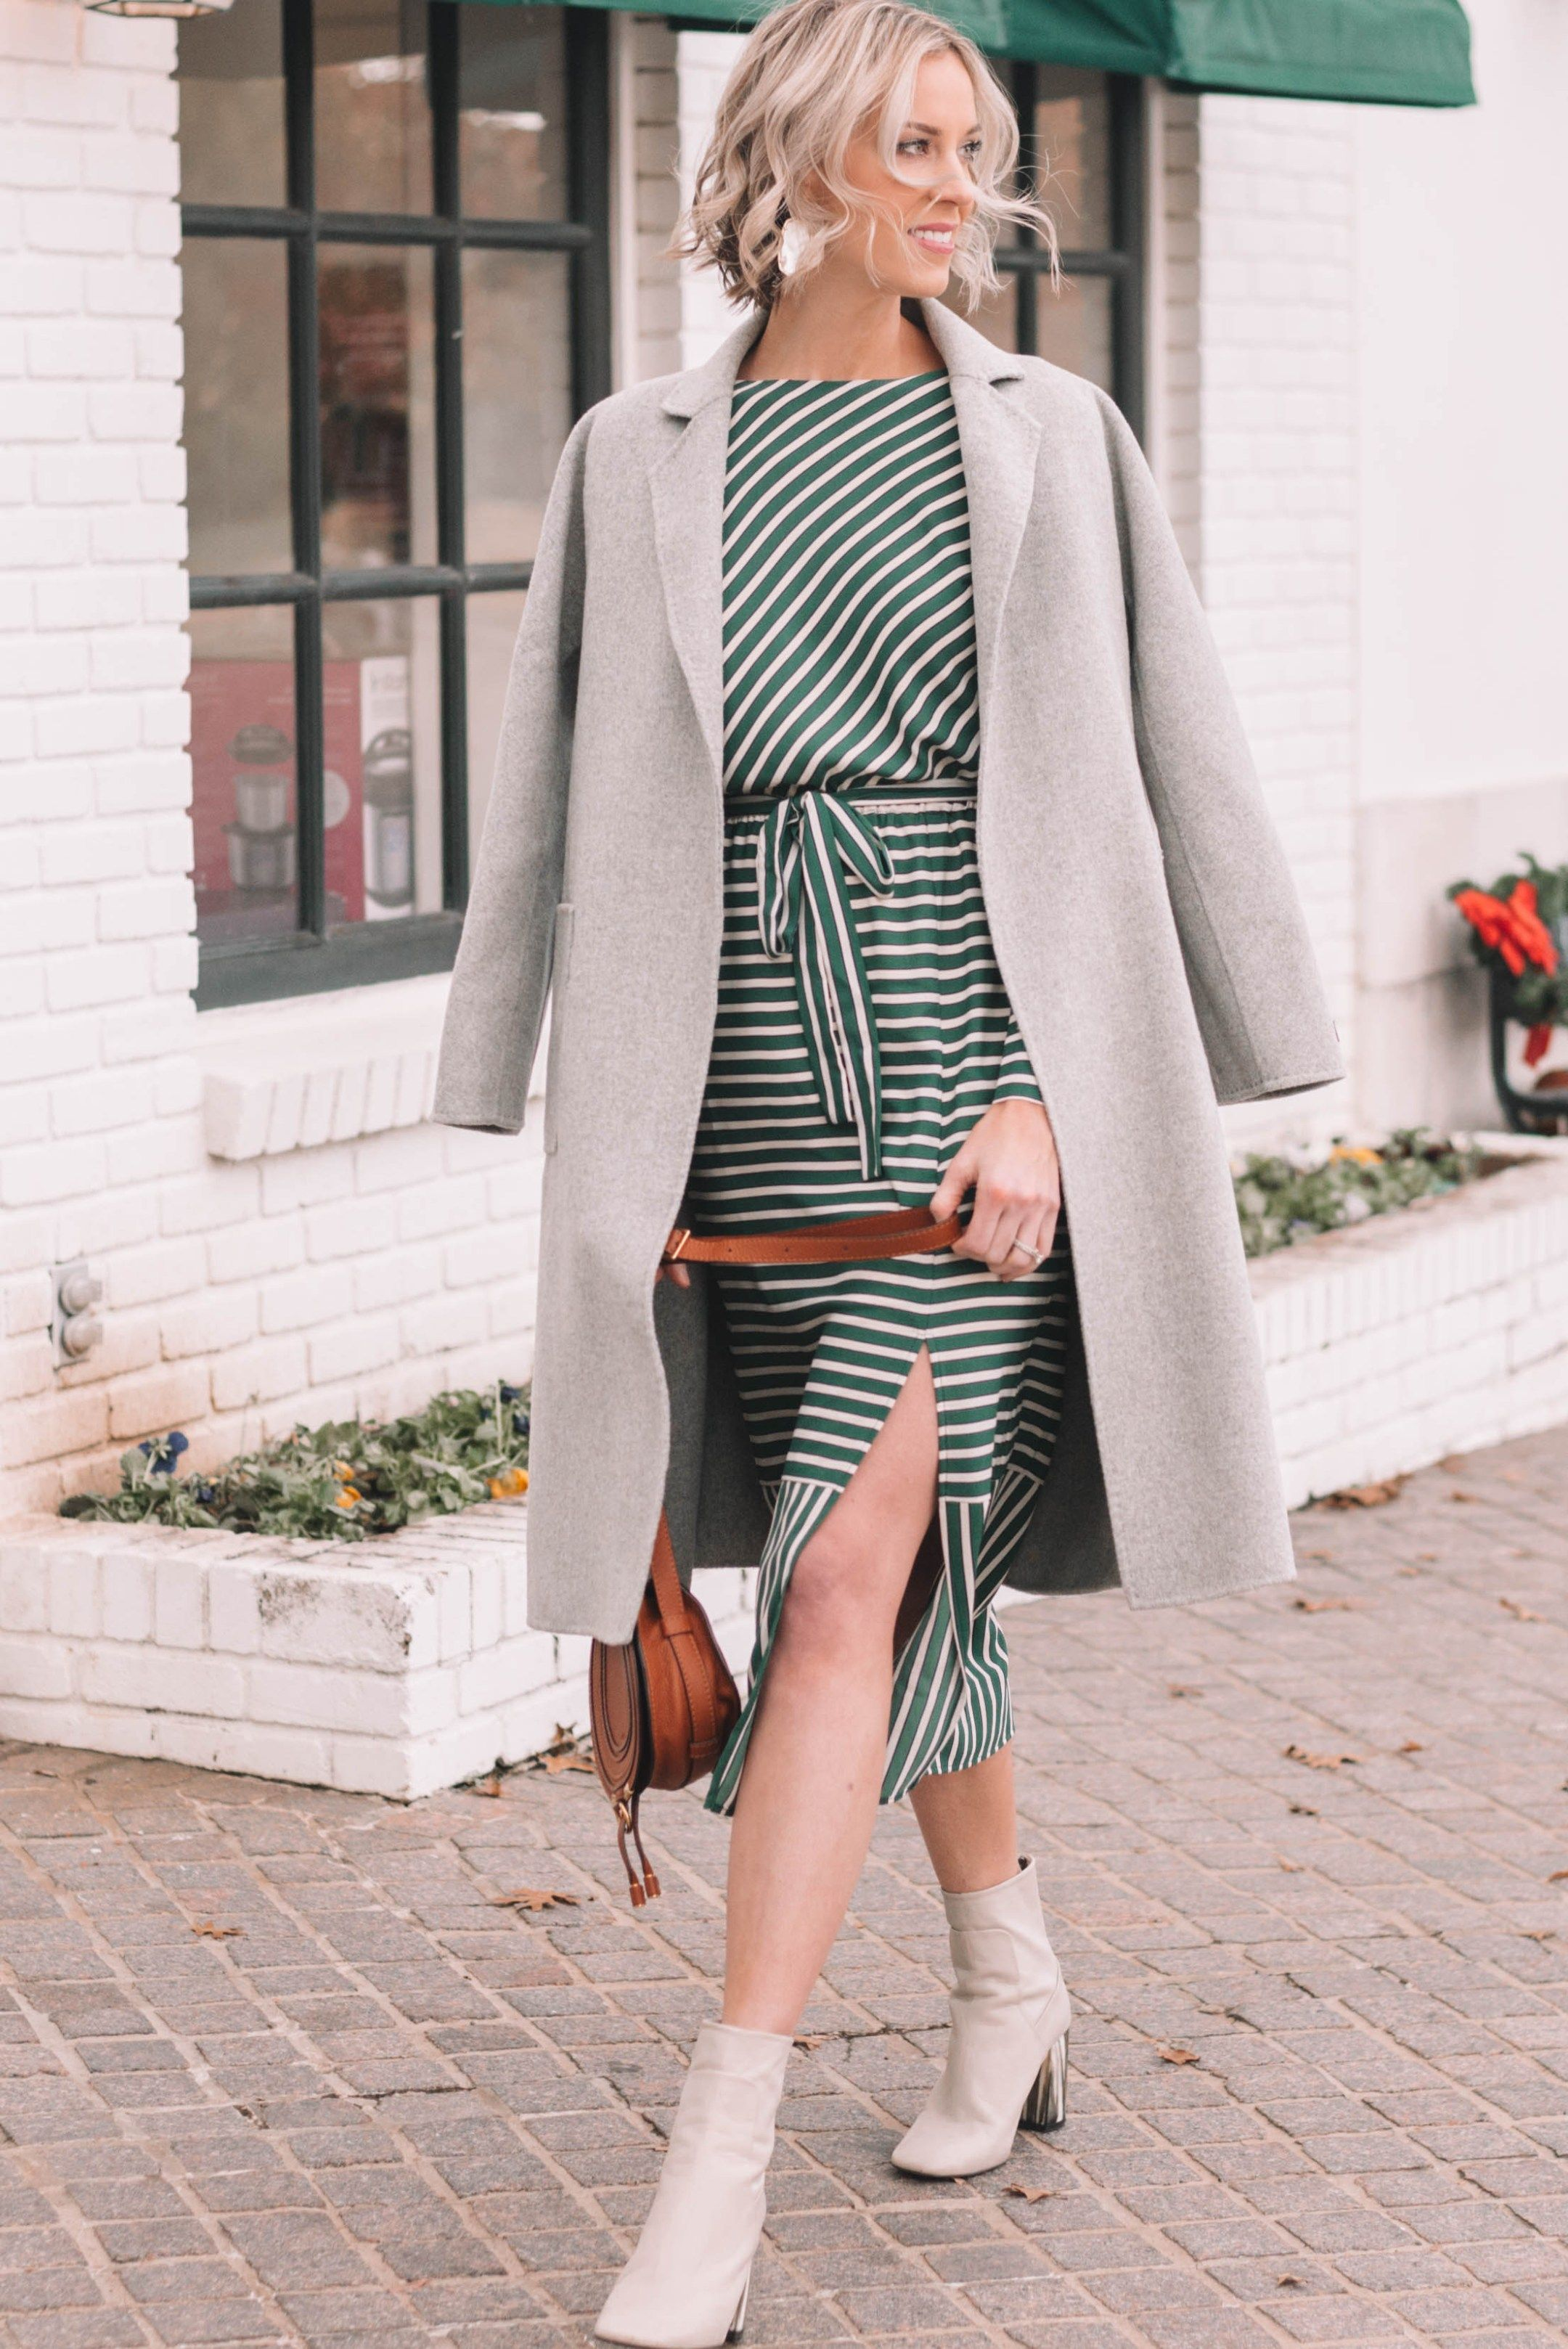 Classic Cashmere Wool Coat Styled Over A Midi Dress And Boots For Winter Fashion Midi Dress Winter Outfits [ 3236 x 2160 Pixel ]